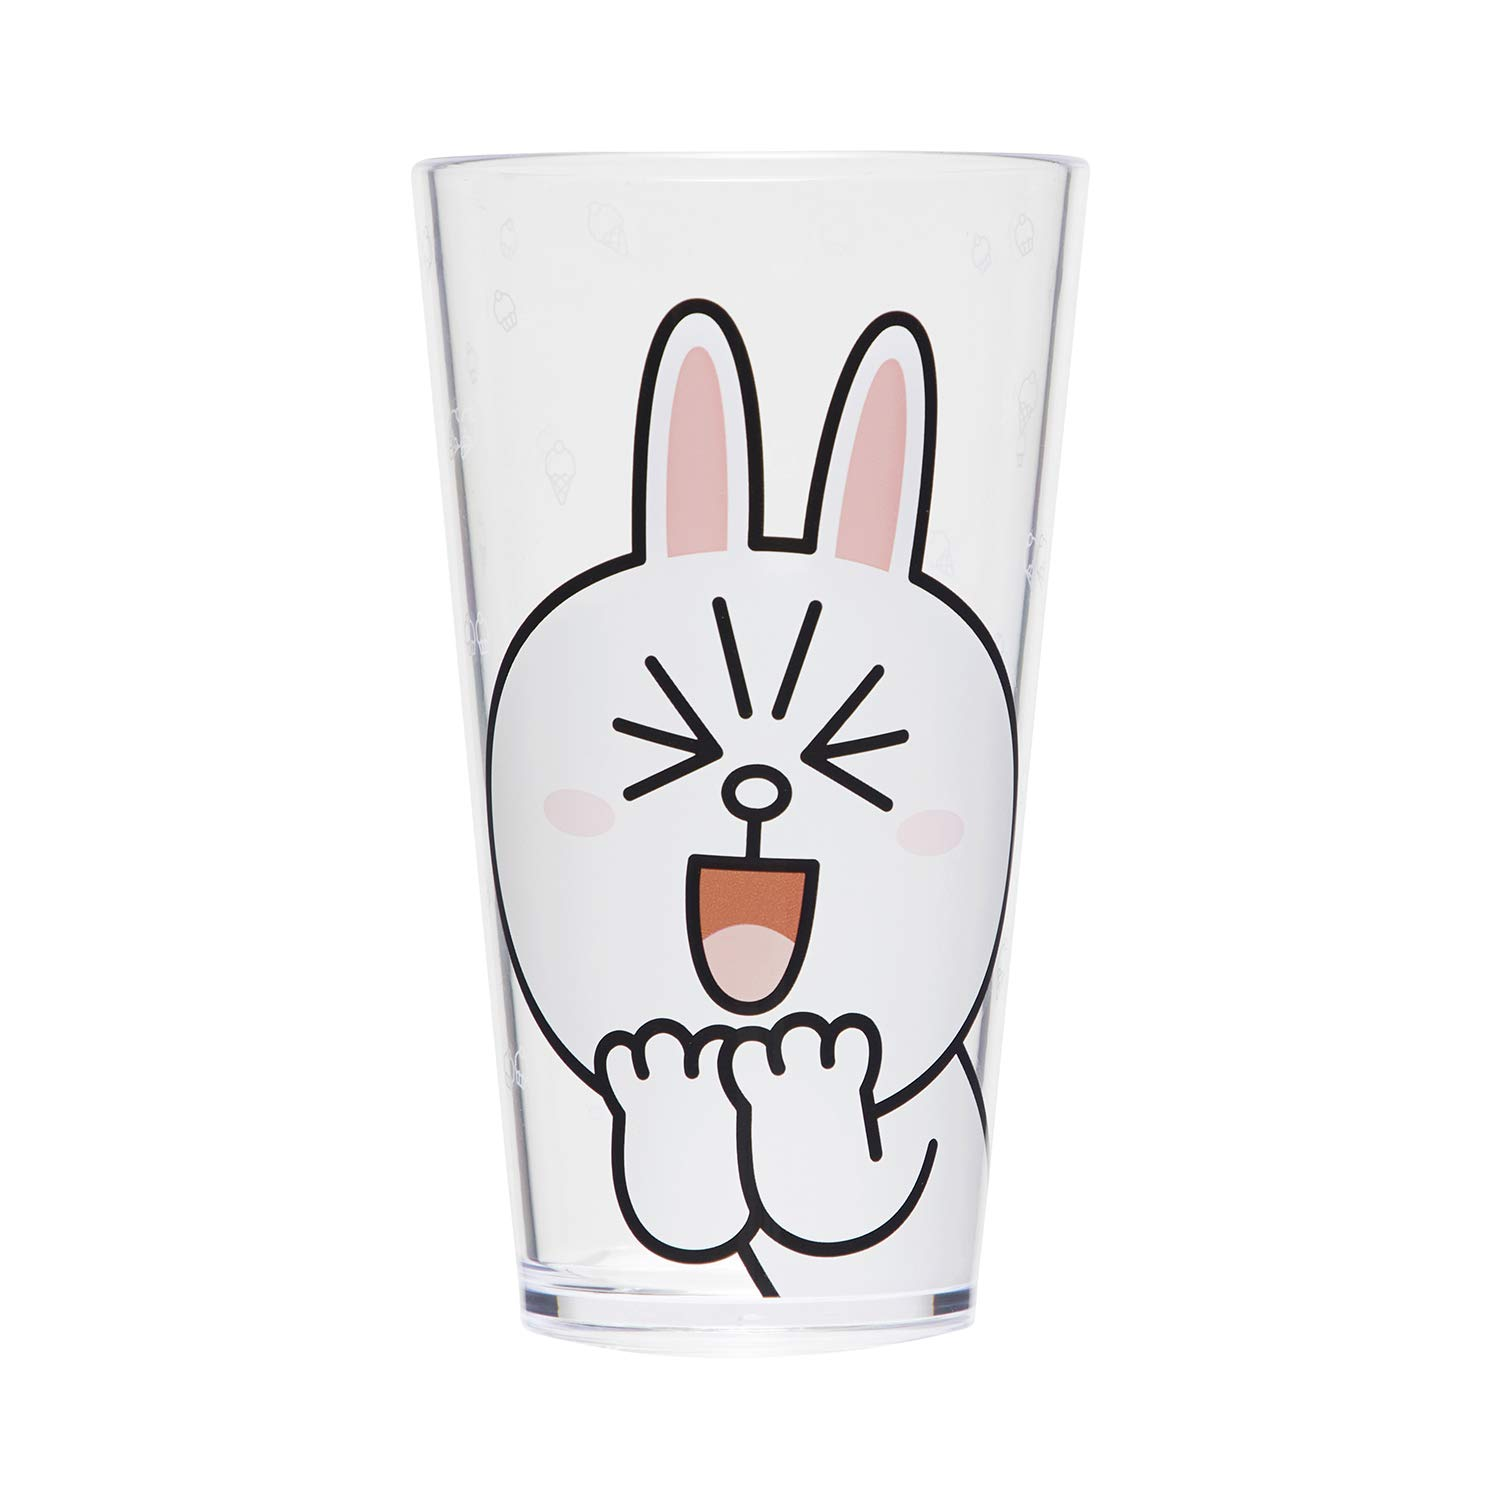 Line Friends Plastic Drinking Cups - 2 Sets of 18.5 ounce CONY Character Design Acrylic Water Tumblers